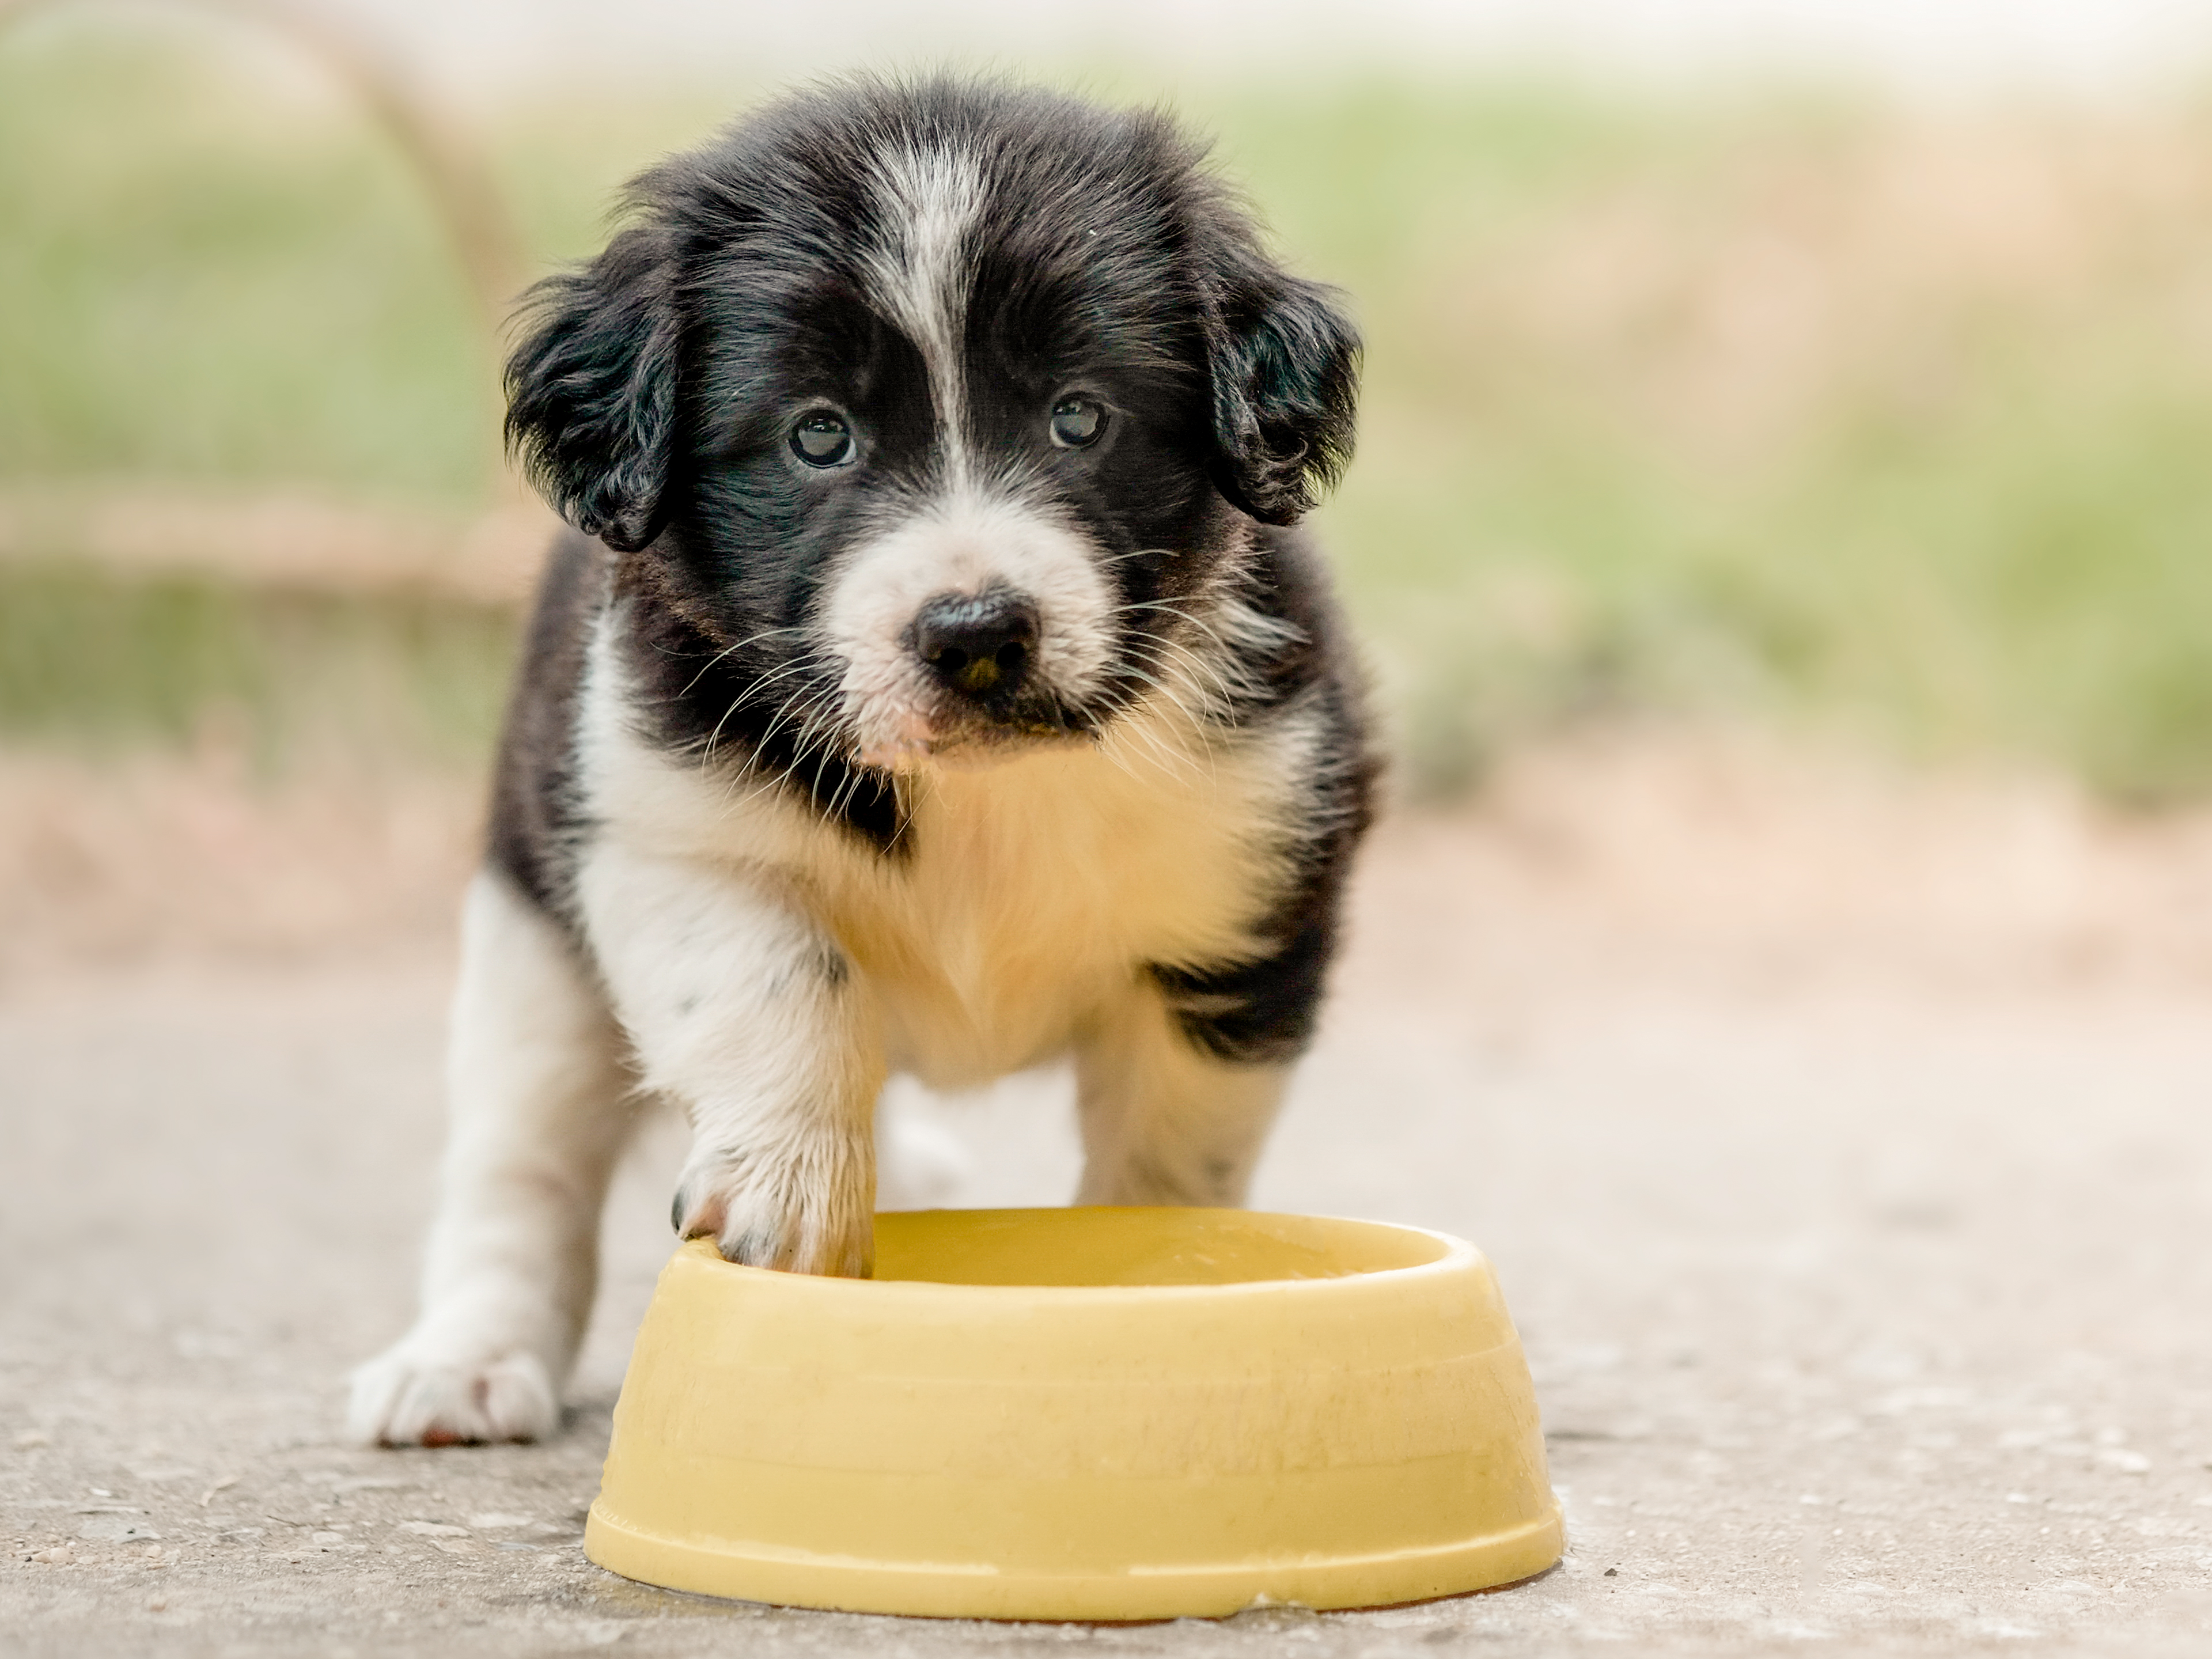 Puppy standing outdoors next to a feeding bowl